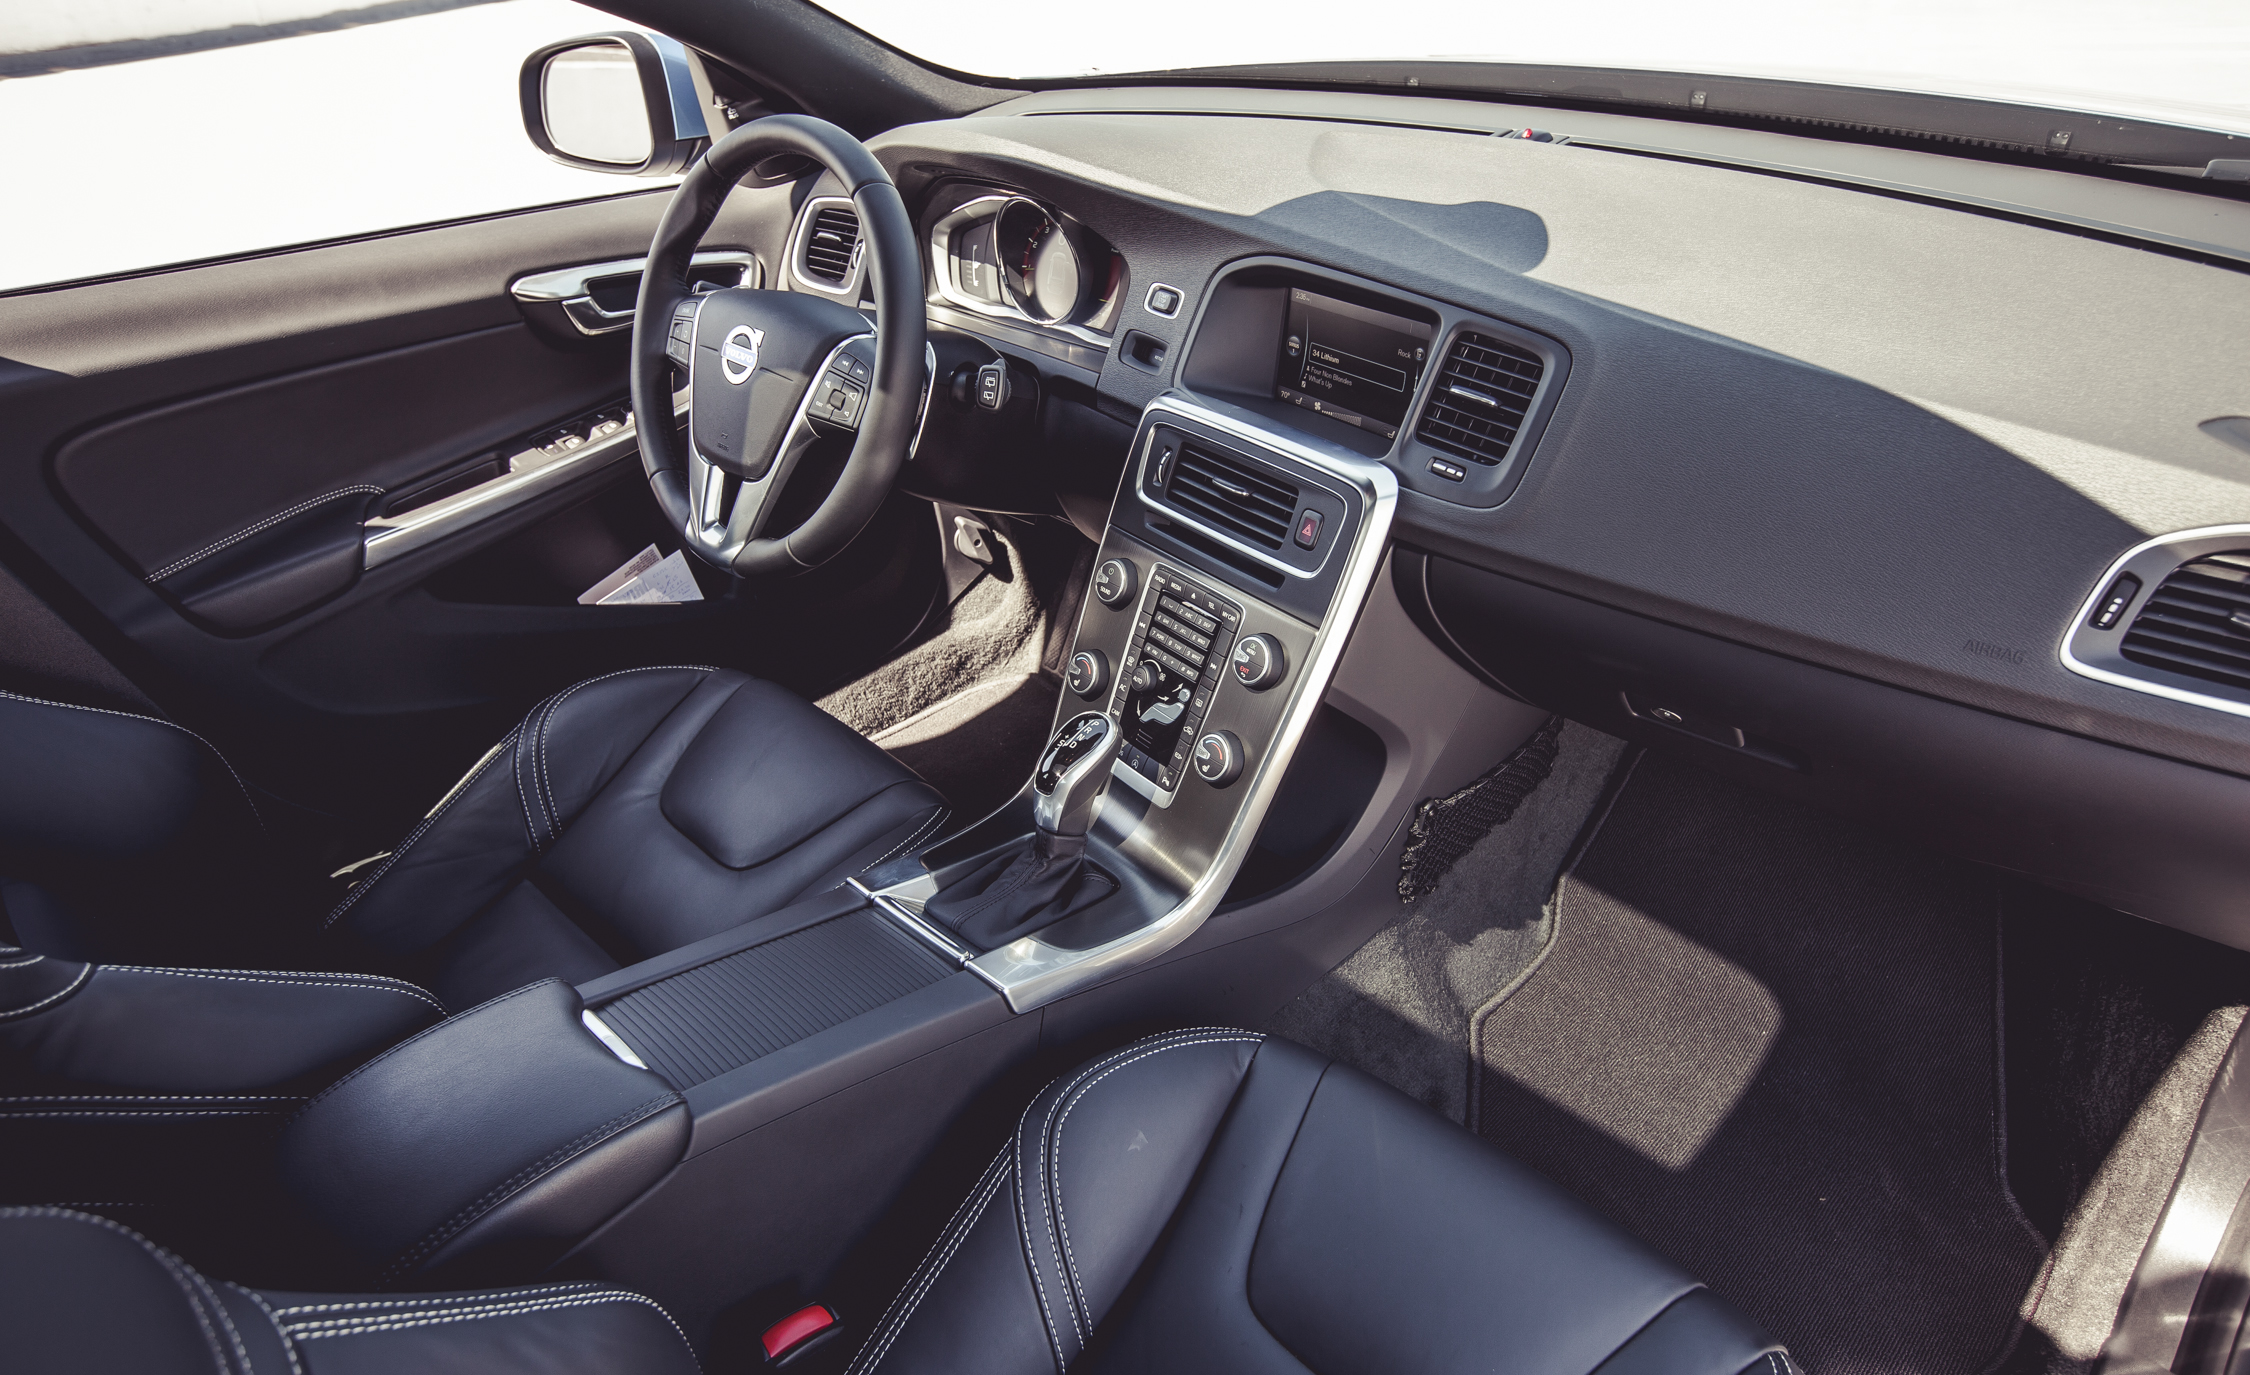 2015 Volvo V60 Interior (Photo 22 of 38)